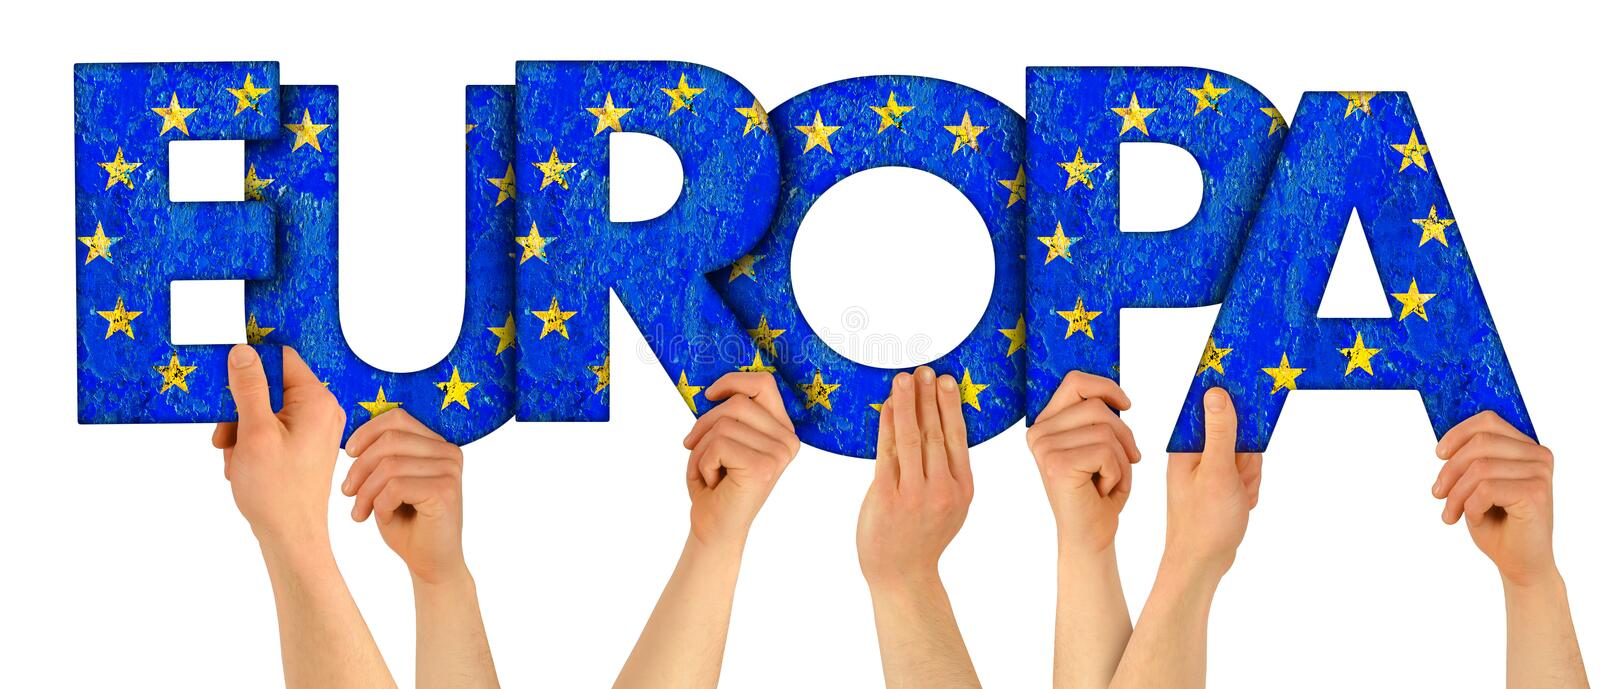 People arms hands holding up wooden letter lettering forming german word Europaenglish translation: Europe in european union. National flag colors tourism stock photography